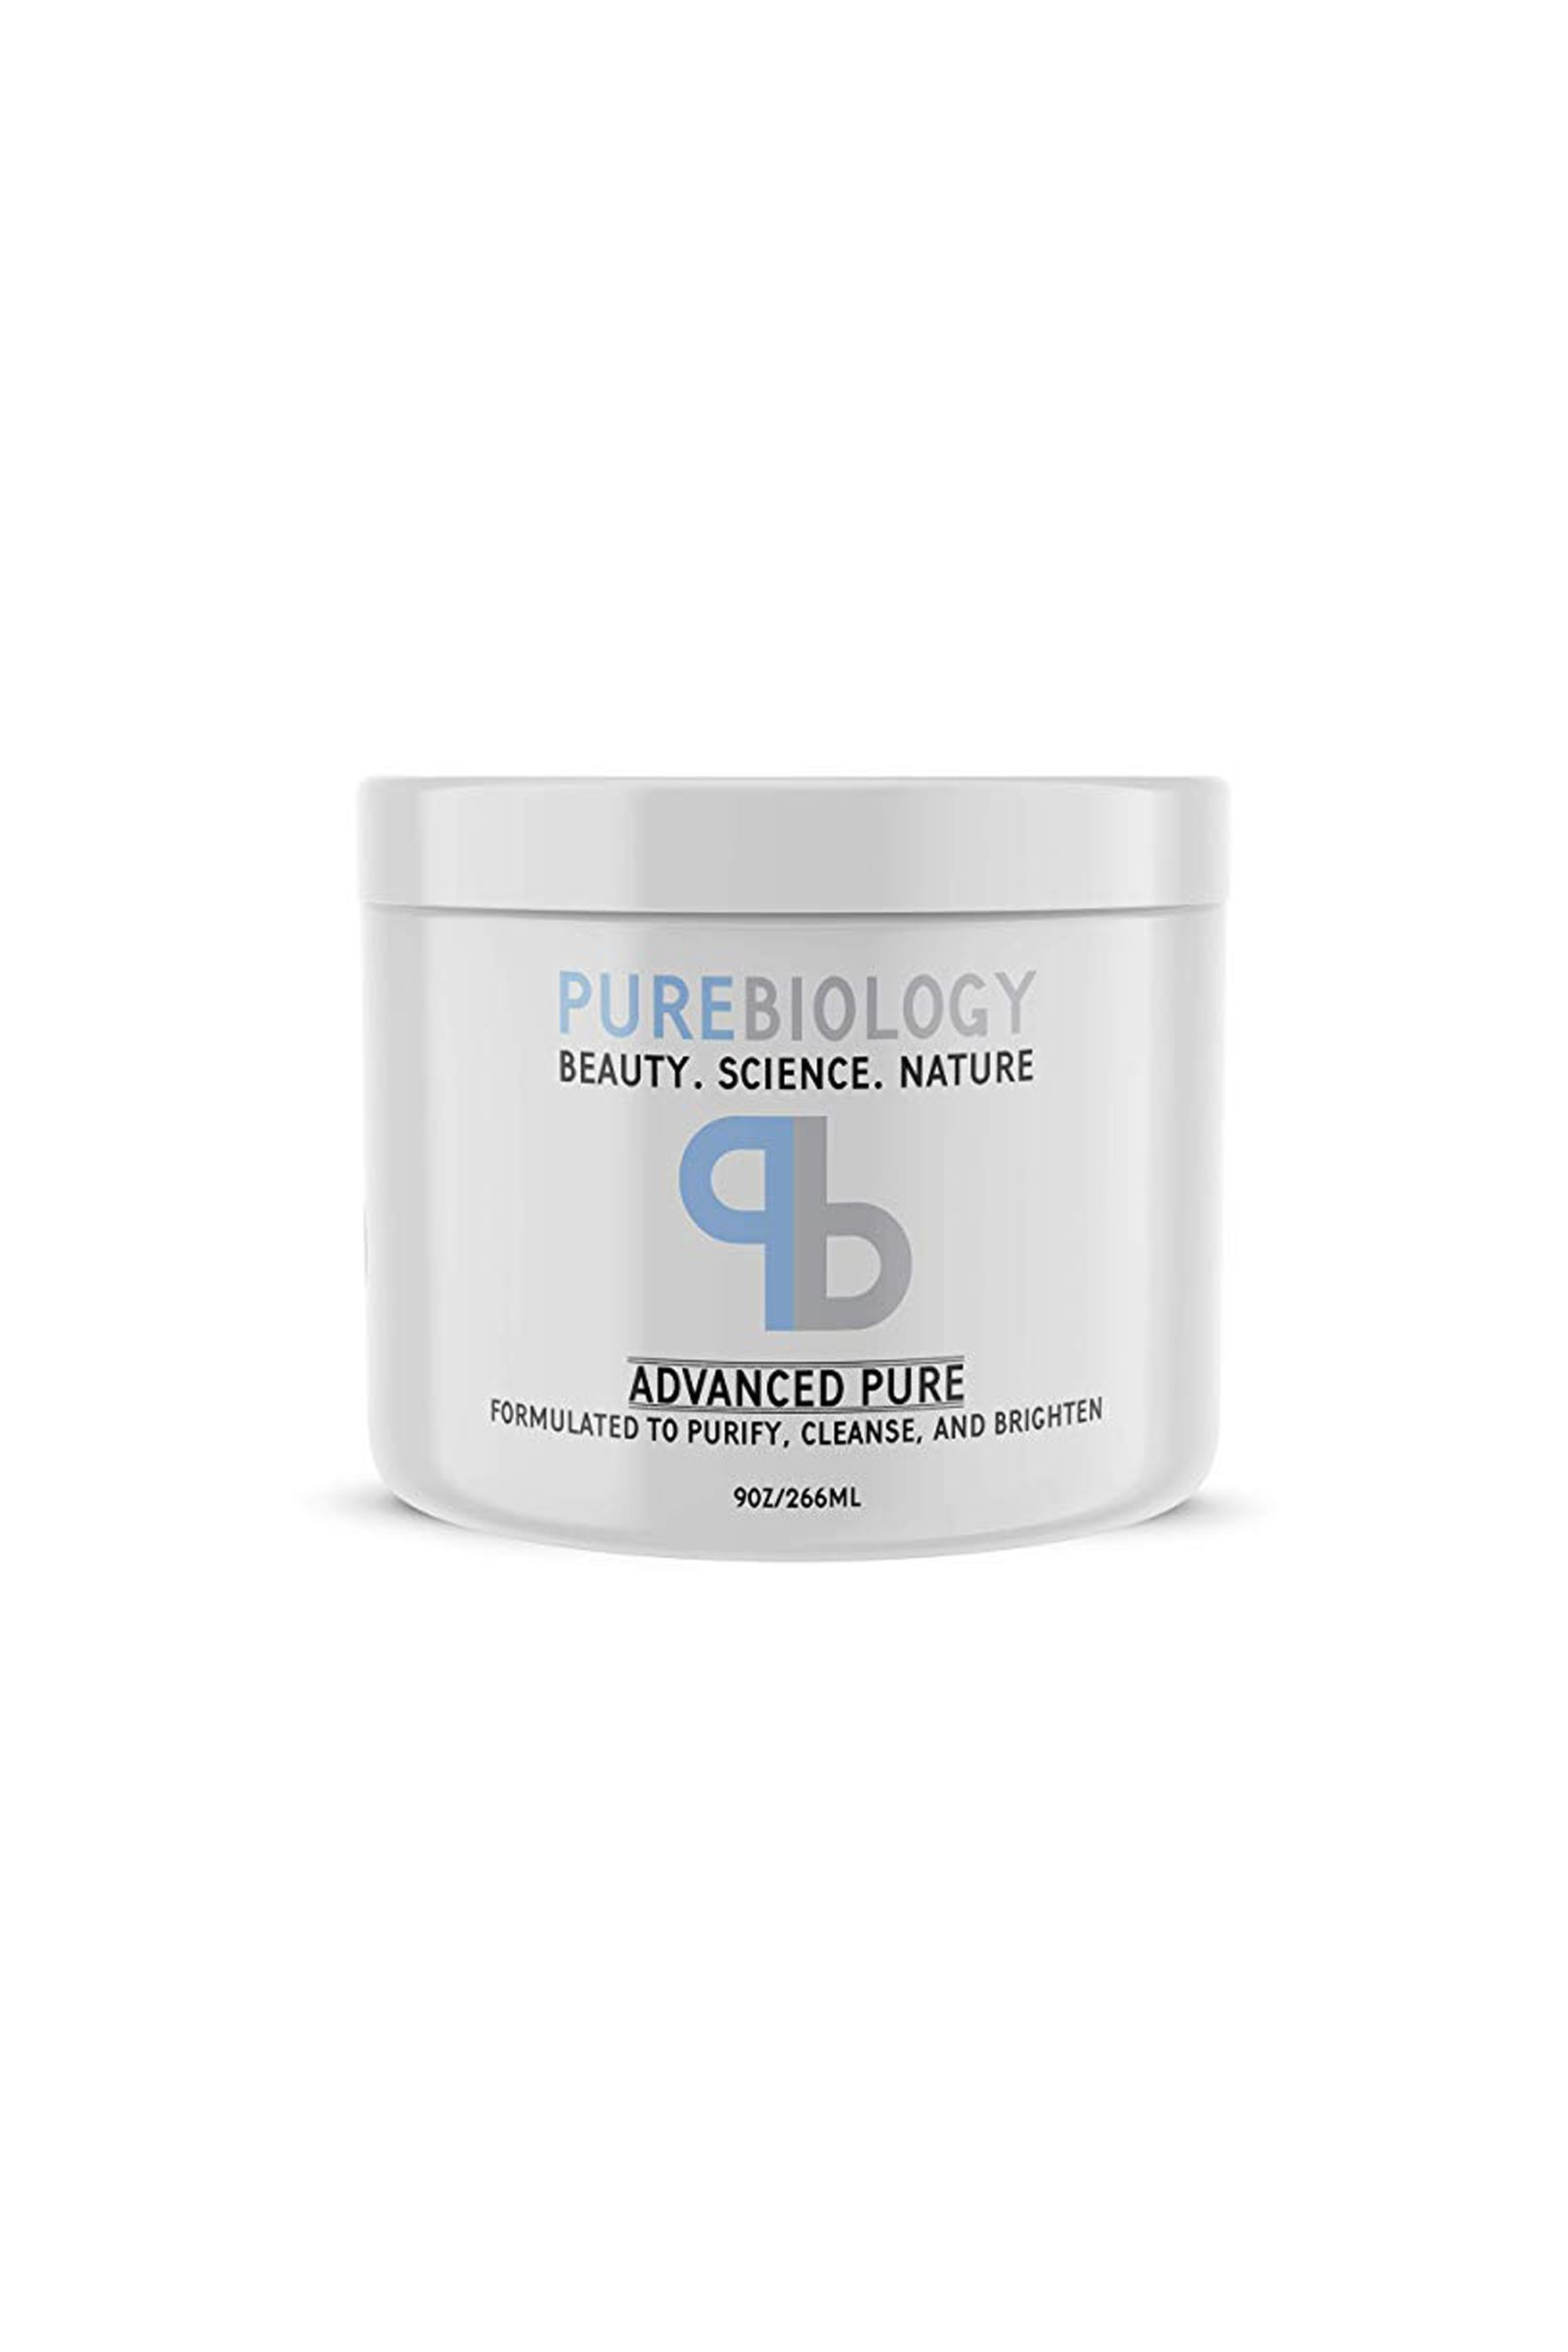 Advanced Pure Face Mask Pure Biology amazon.com $22.90 SHOP NOW Full of exfoliating ingredients like Bentonite Clay, Kaolin Clay, and vitamins A & E, this mask works to rid skin of impurities and reduce the appearance of acne scars, hyperpigmentation, and redness. Users note it can be a bit messy, so prepare in advance for a ruined bathroom sink.